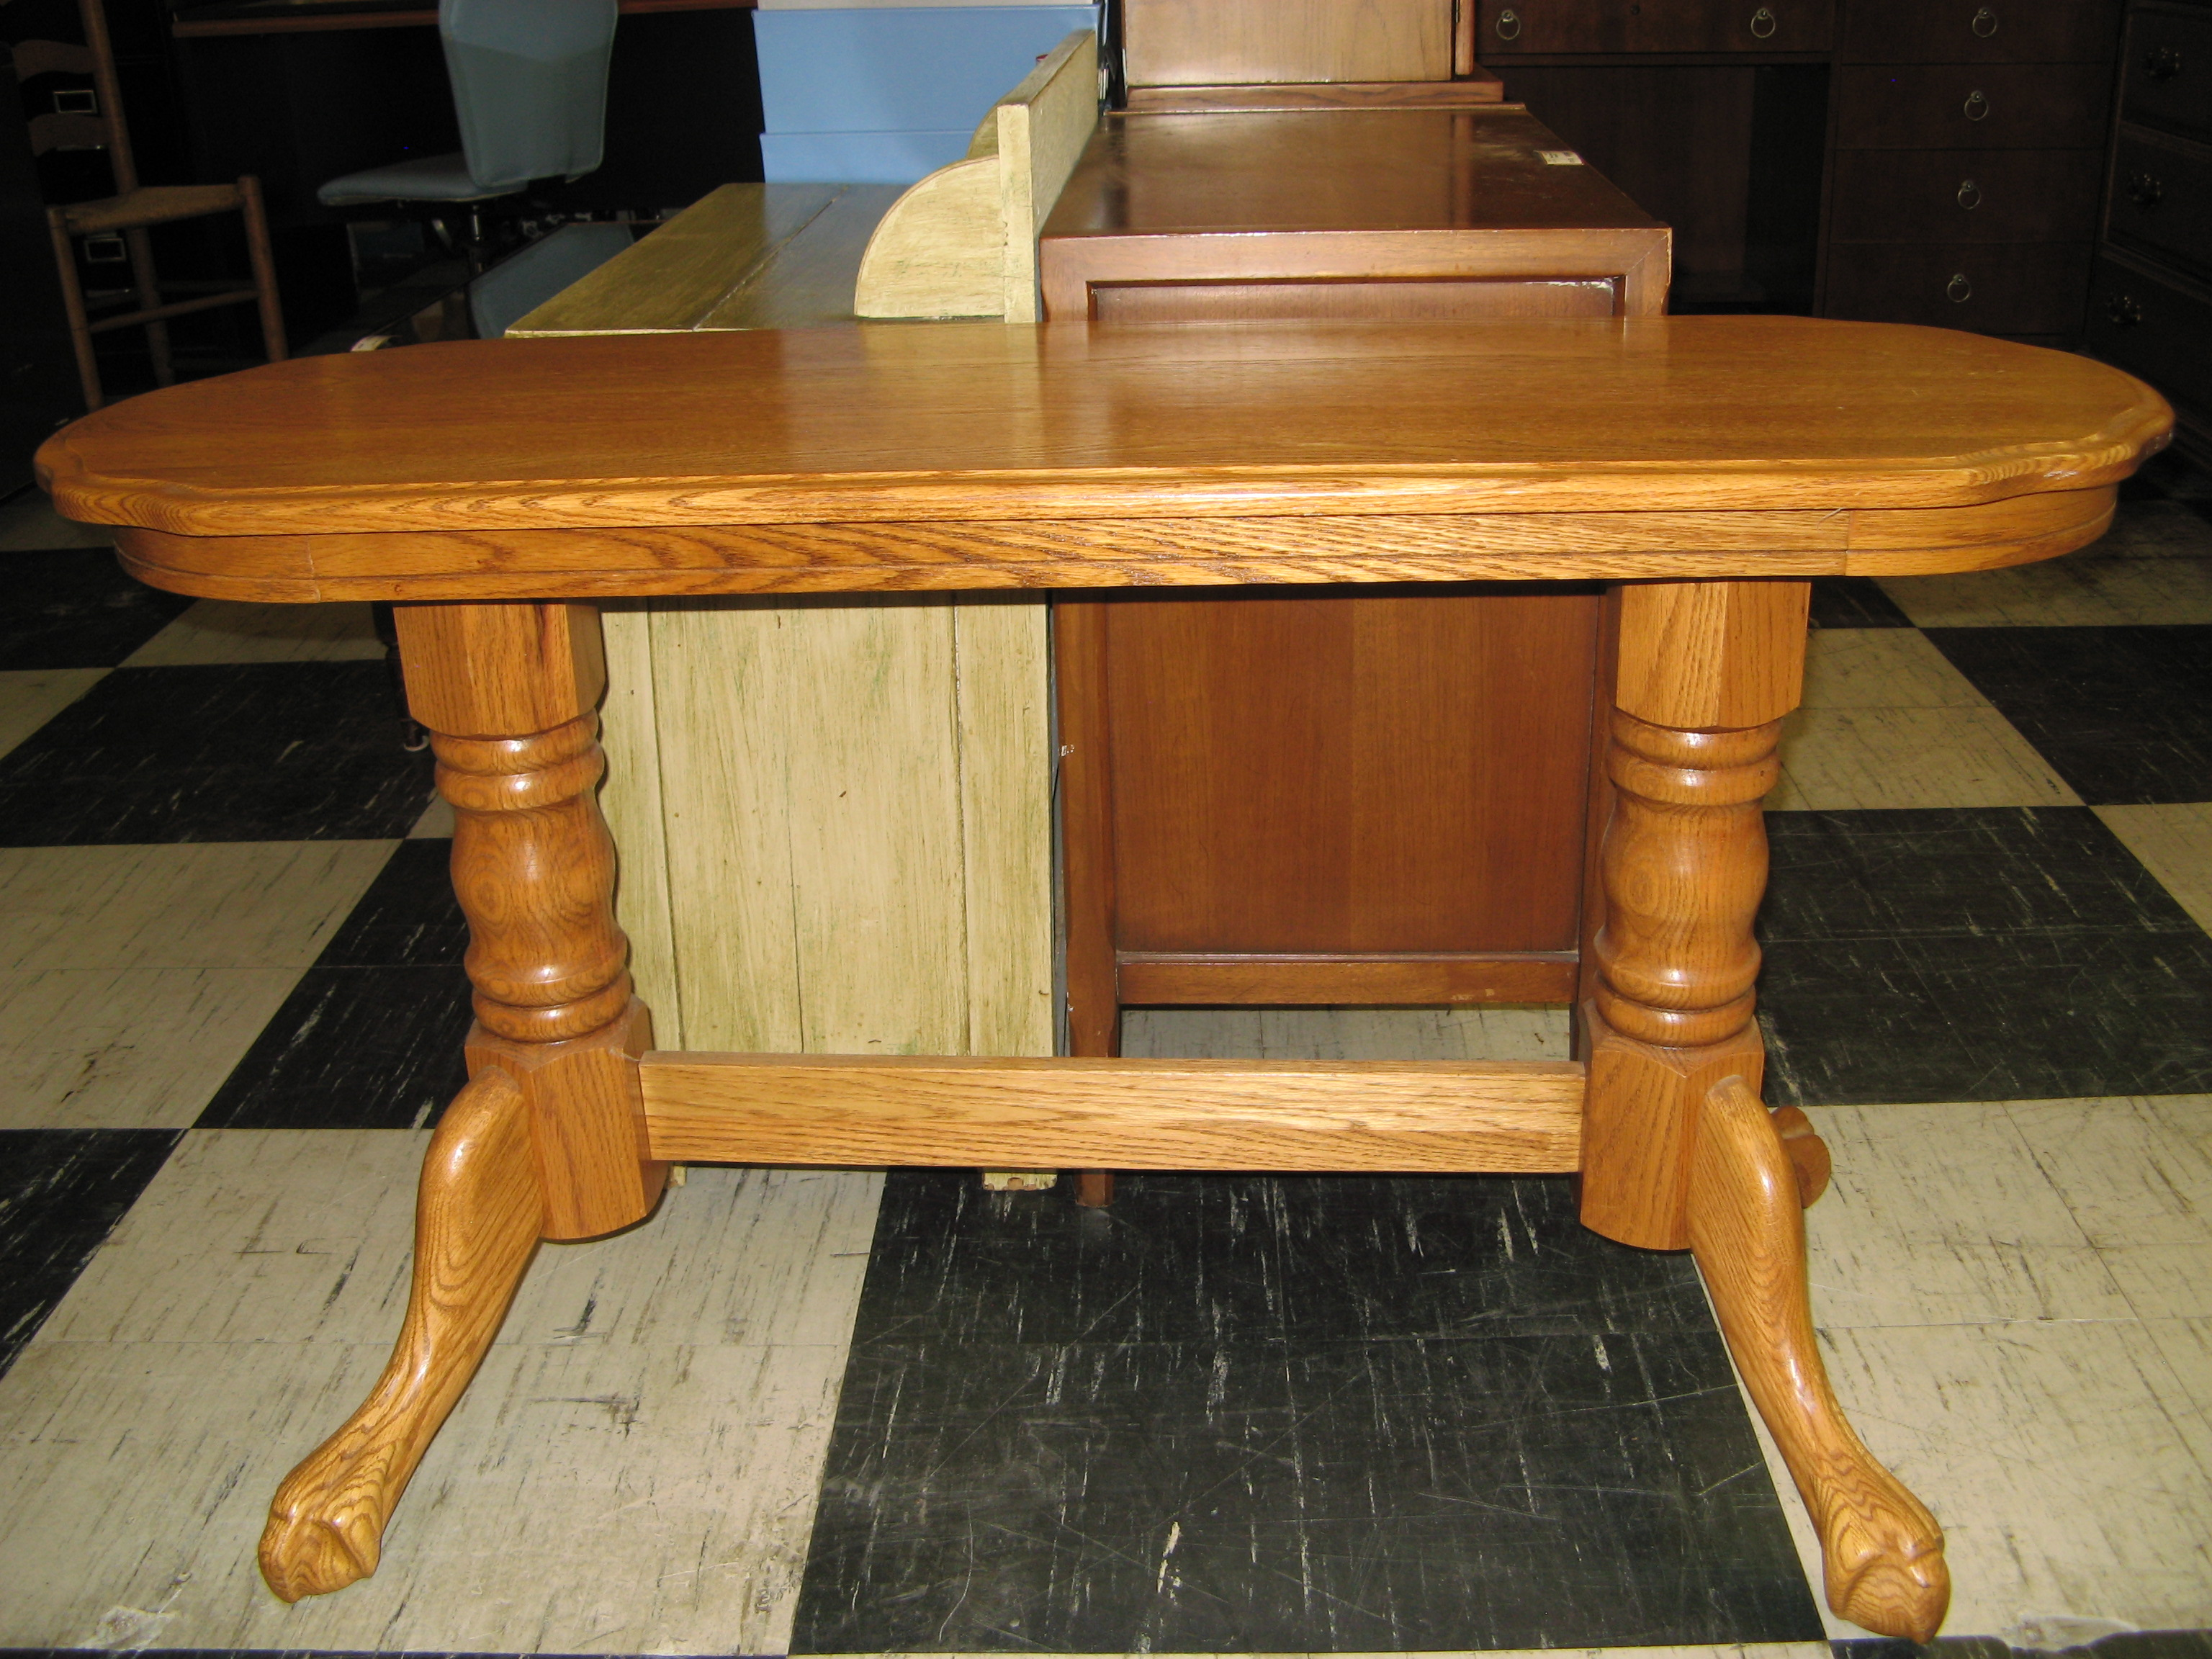 Solid Oak Foyer Table with Trestle Base & Clawfoot Legs